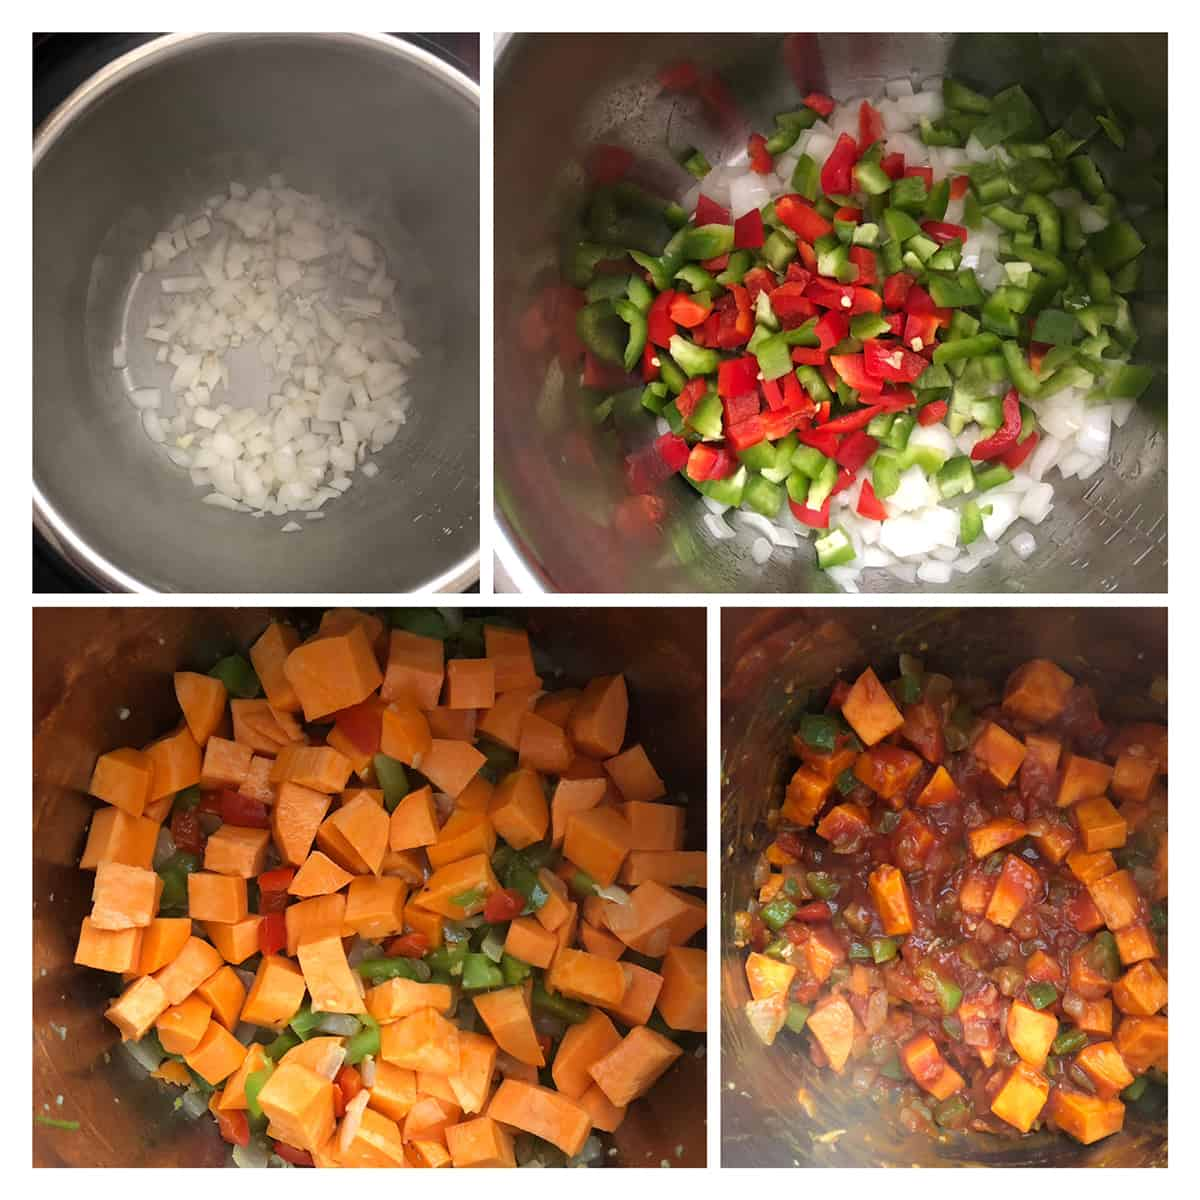 Step by step photos showing sautéing of onions, peppers, sweet potatoes and tomato puree